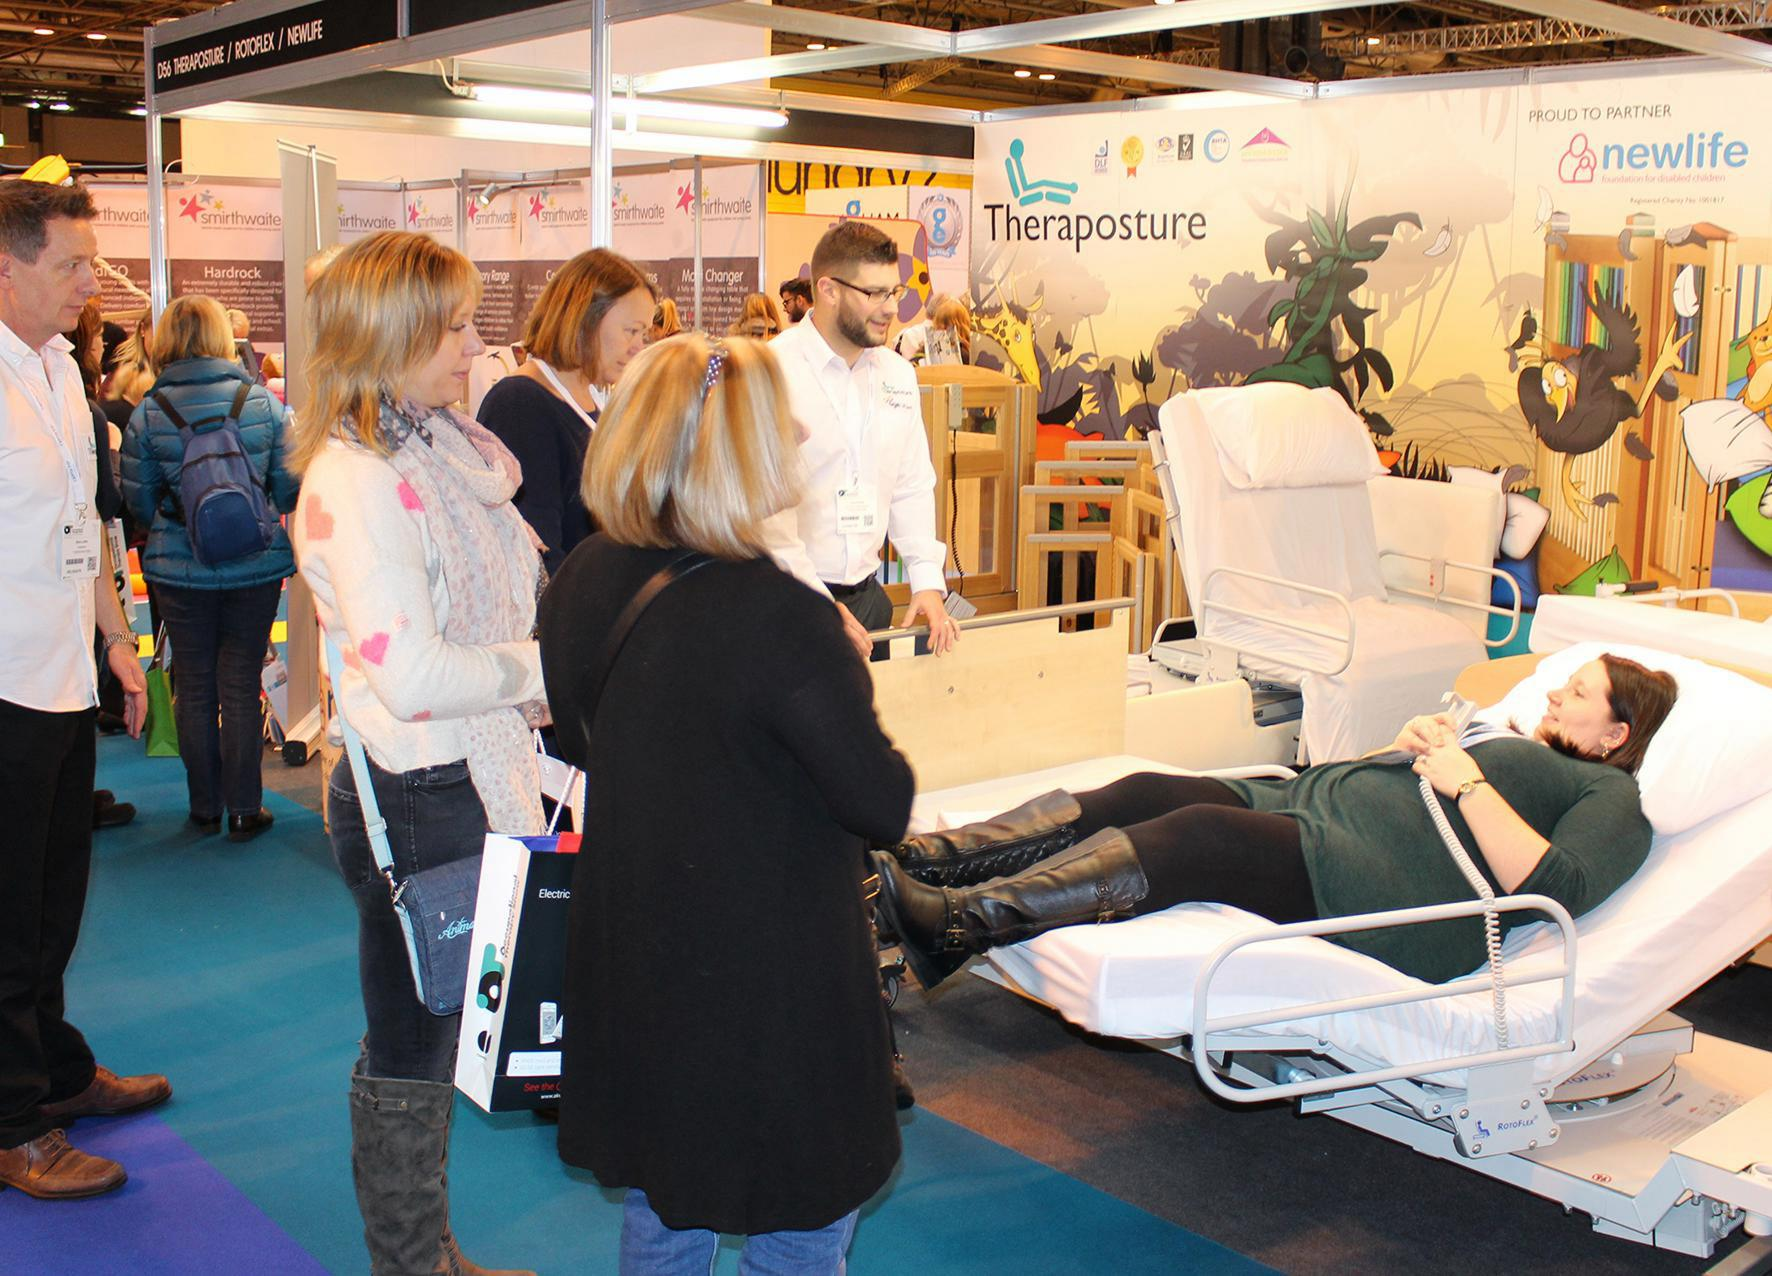 Theraposture to extend market-leading Rotoflex bed range  with pioneering new additions at OT Show